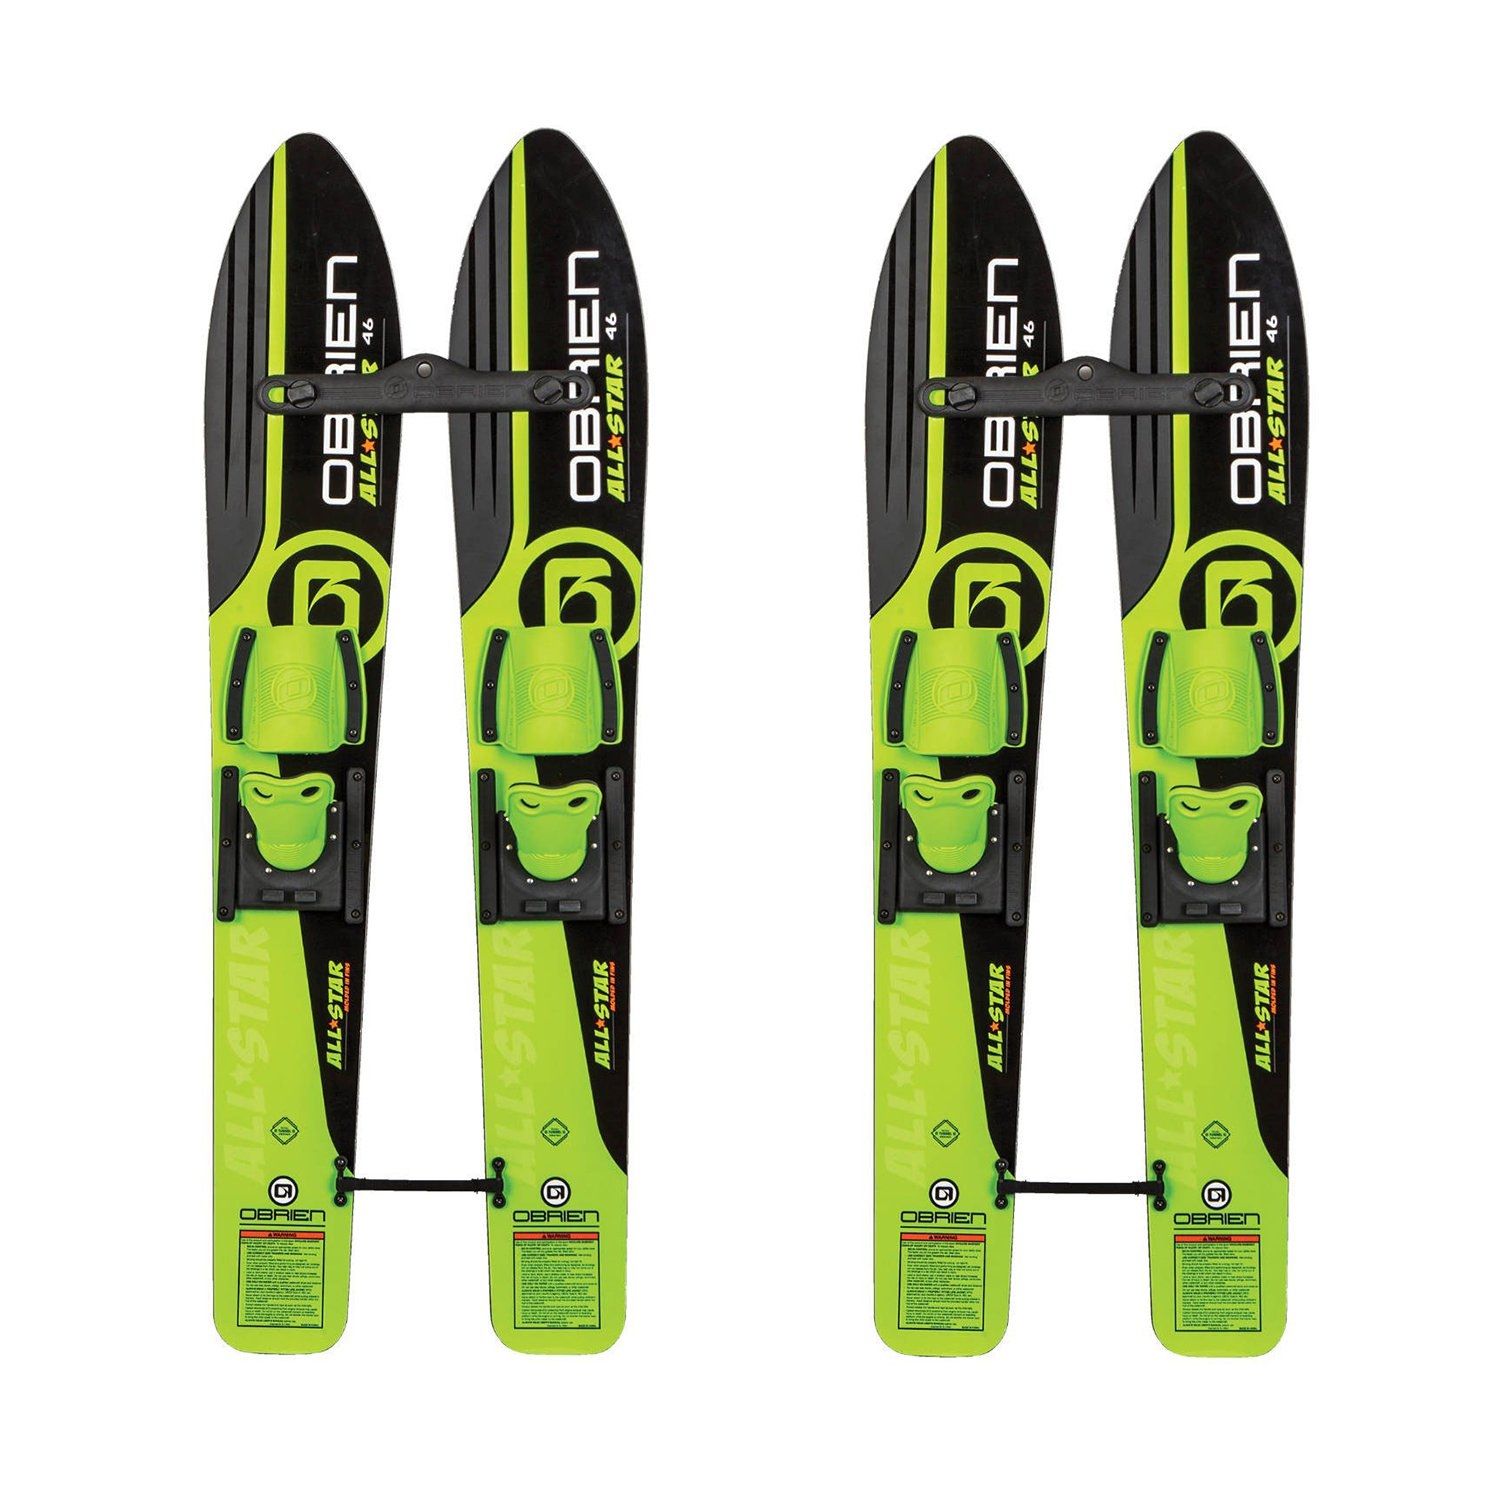 OBrien 46 Inch Children All Star Trainer Kids Combo Waterskis w/ Rope (2 Pack)